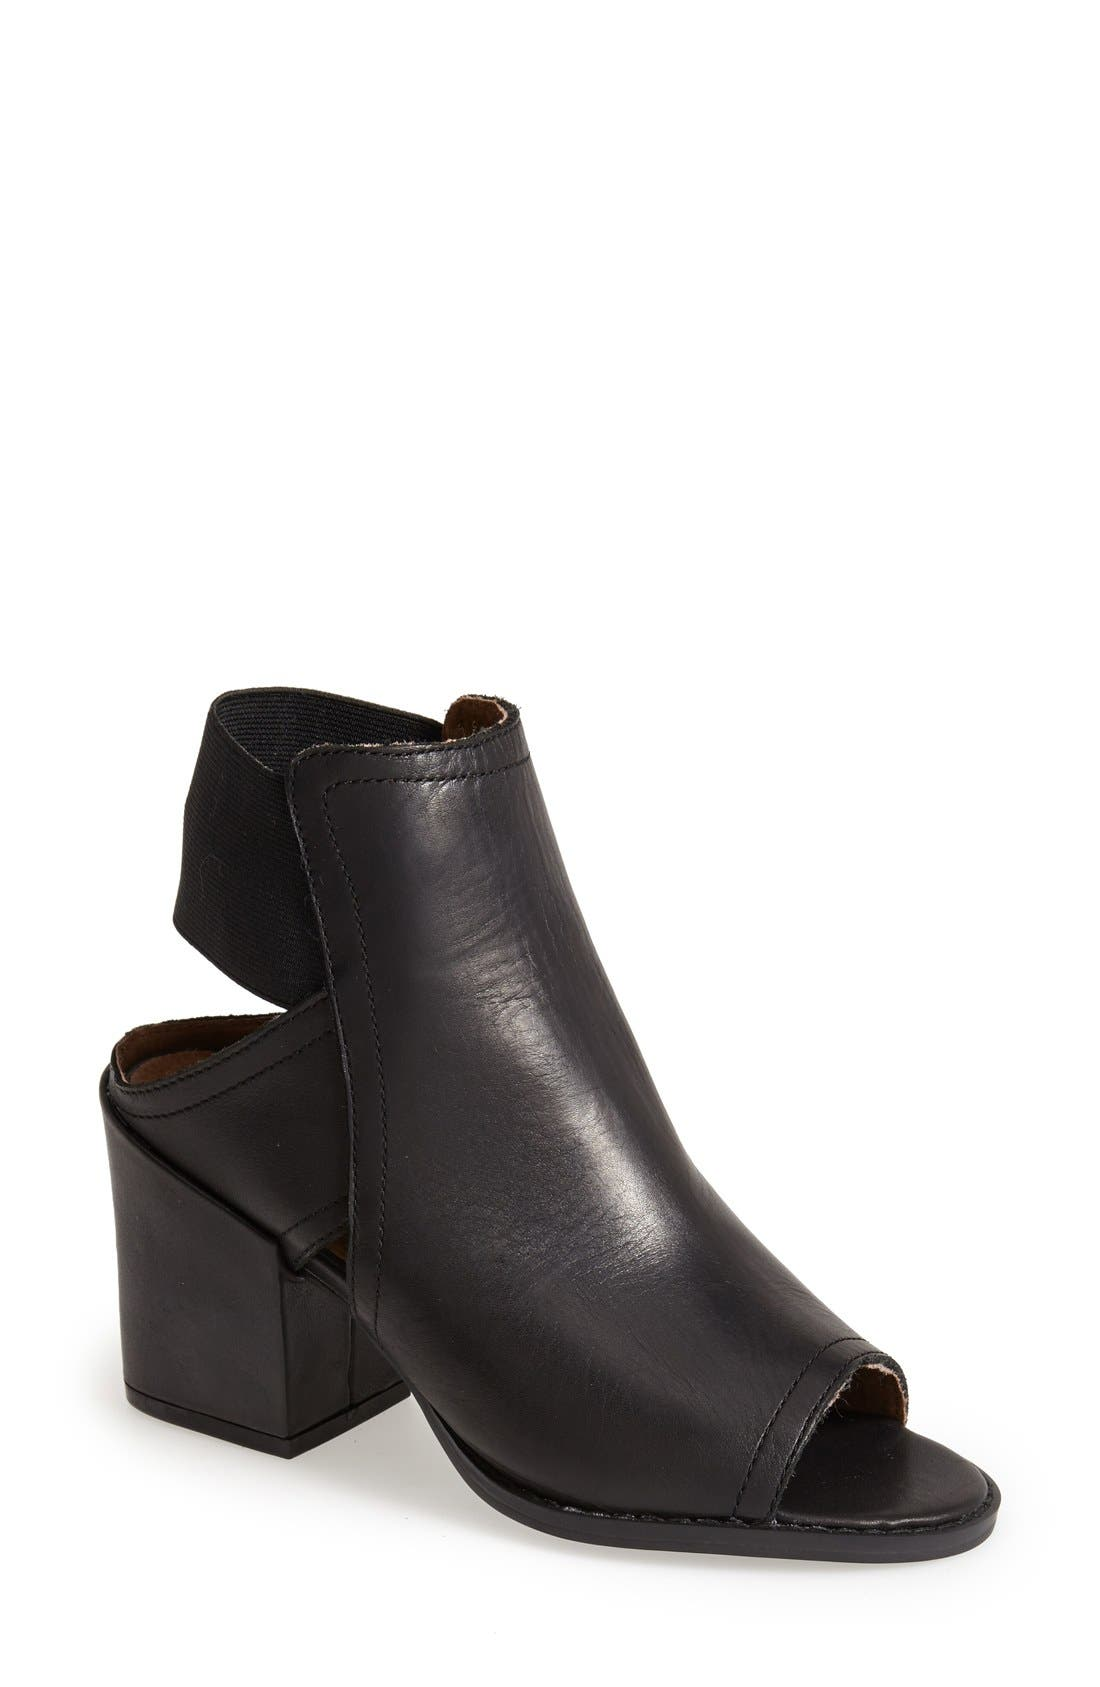 'Polly' Open Toe Bootie, Main, color, 001